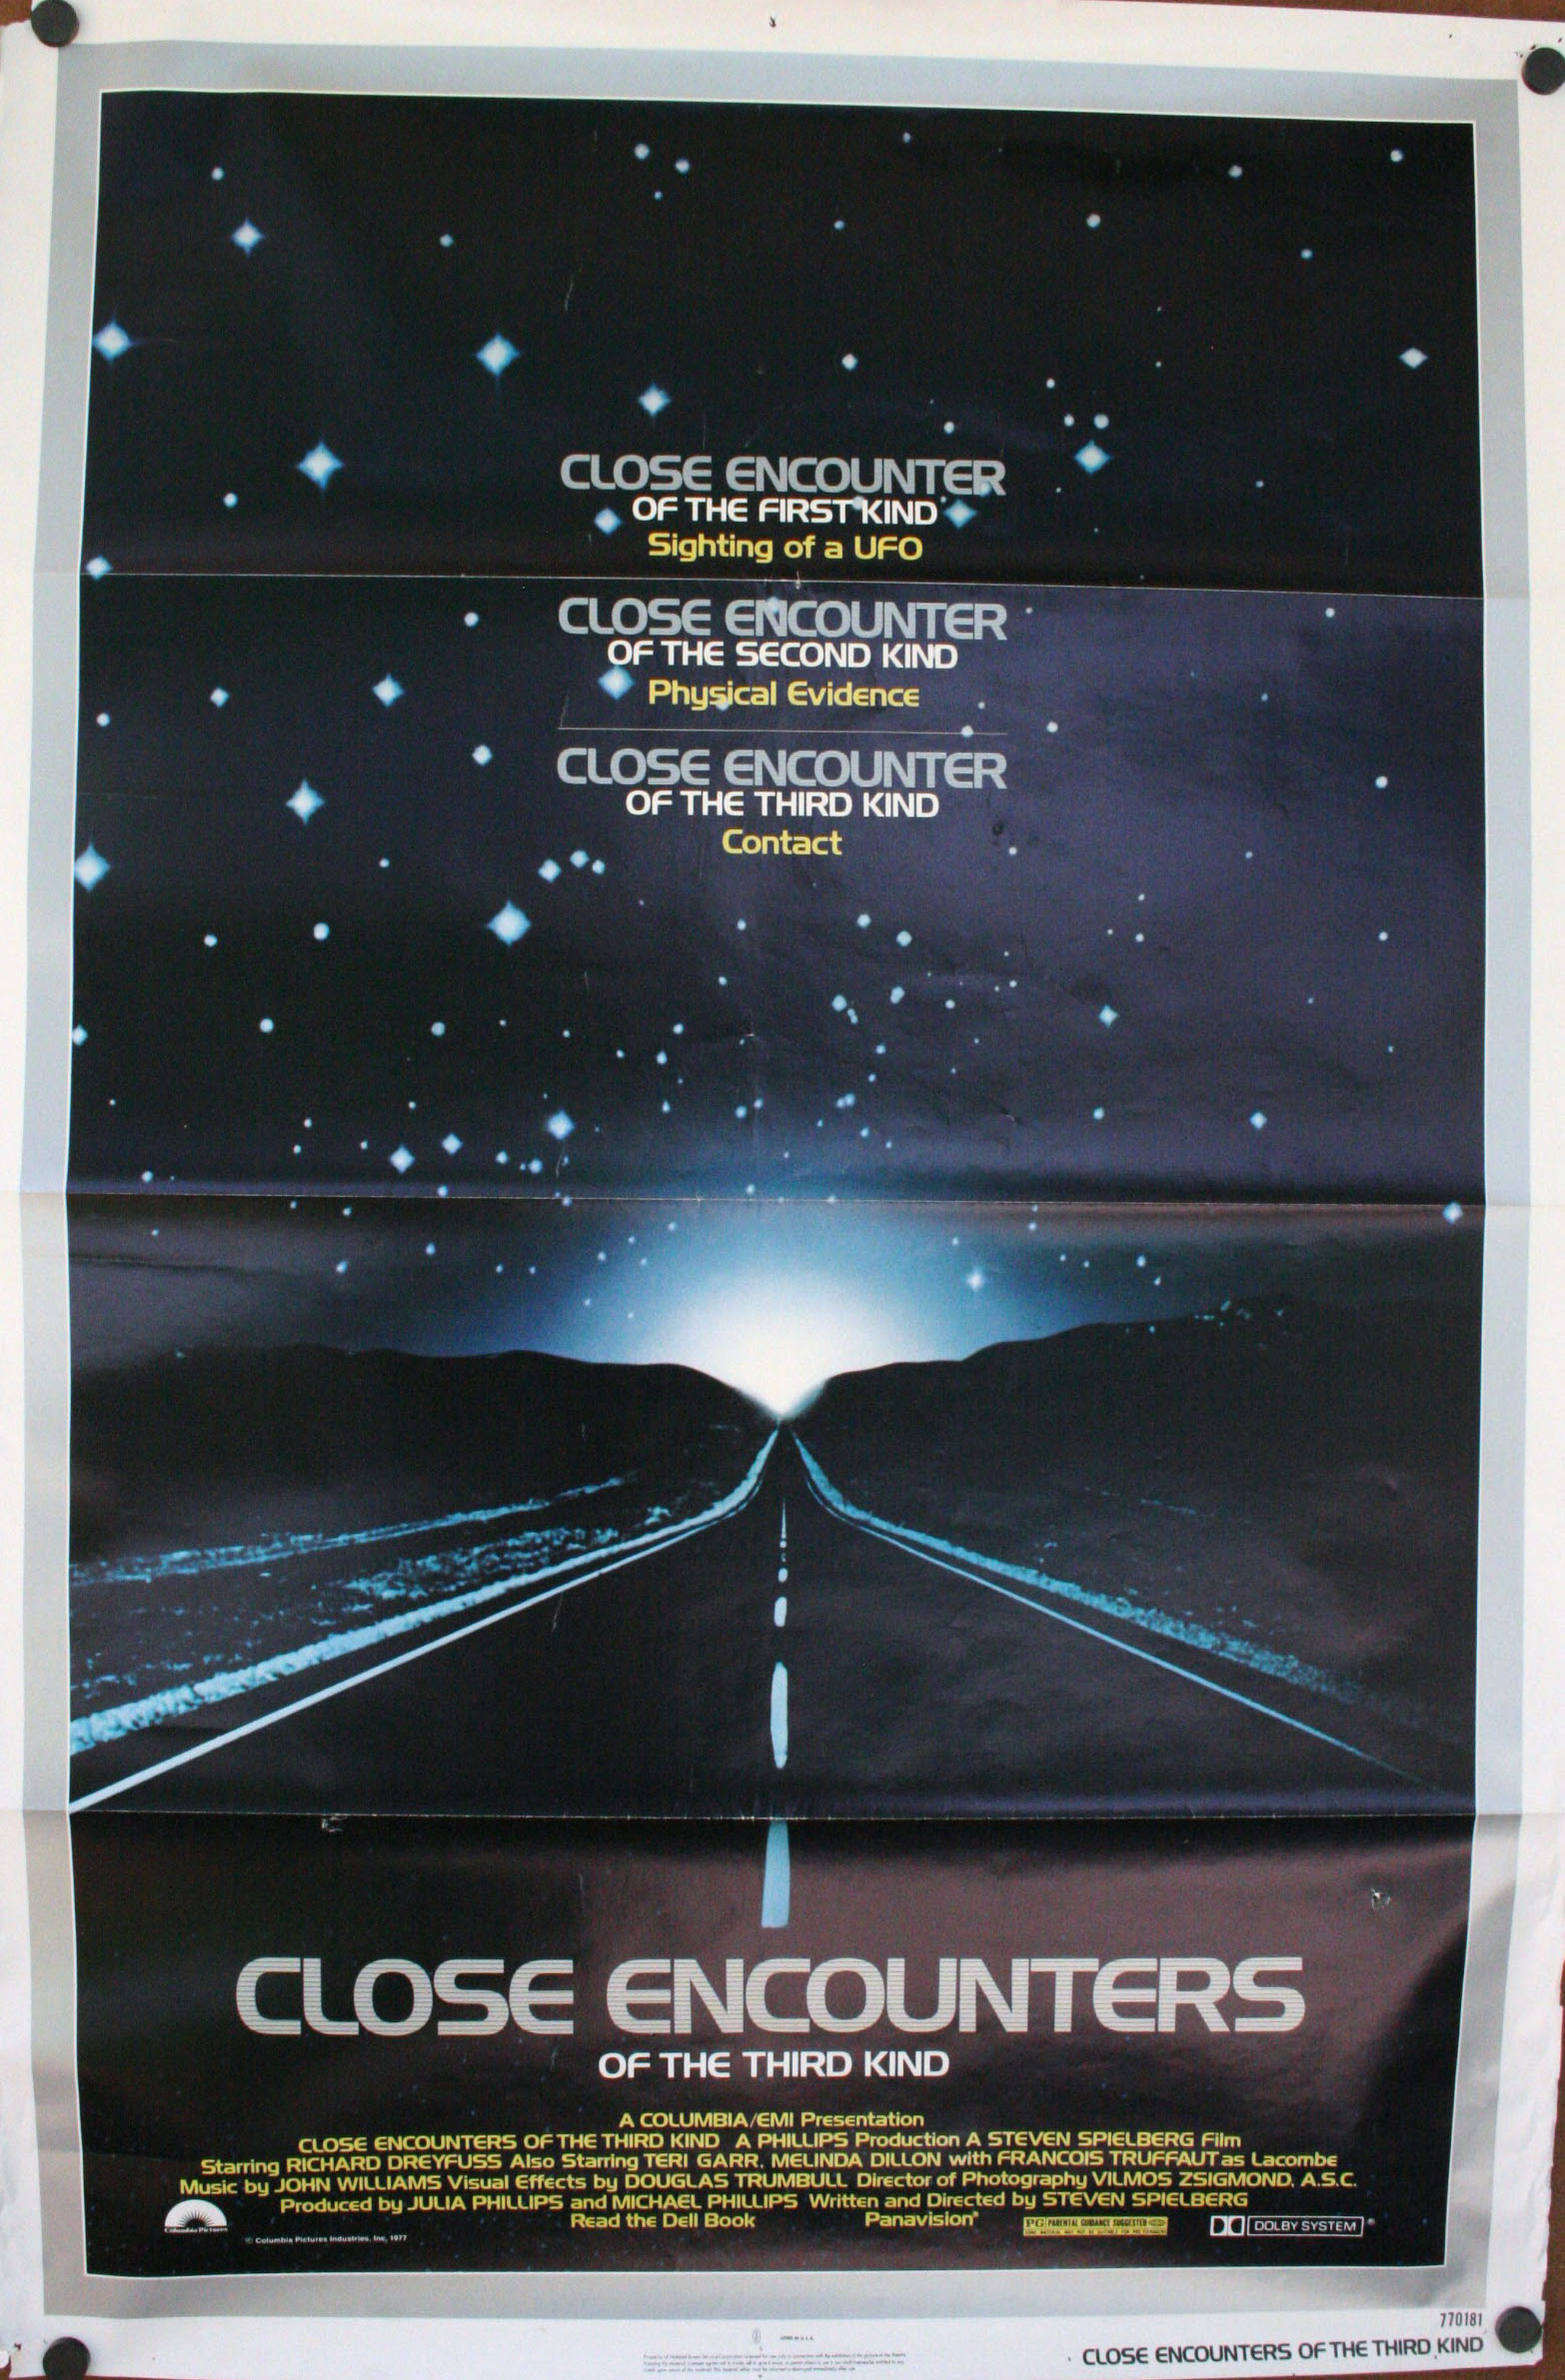 CLOSE ENCOUNTERS OF THE THIRD KIND - Spielberg Classic ...